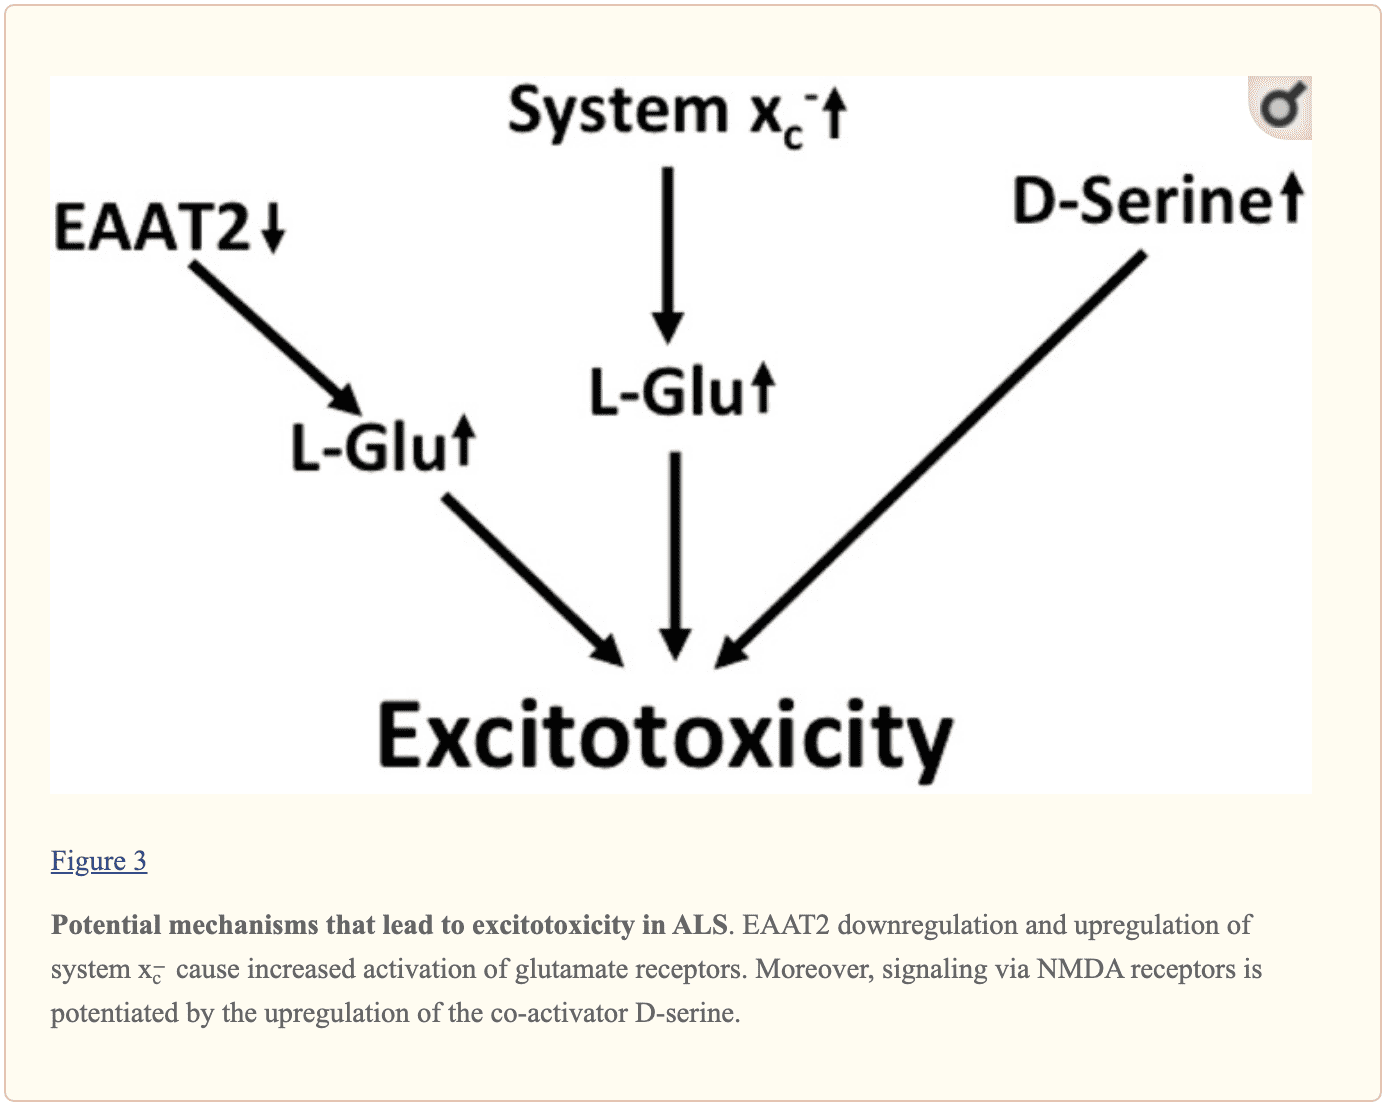 Figure 3 Potential Mechanisms for Excitotoxicity in ALS | El Paso, TX Chiropractor